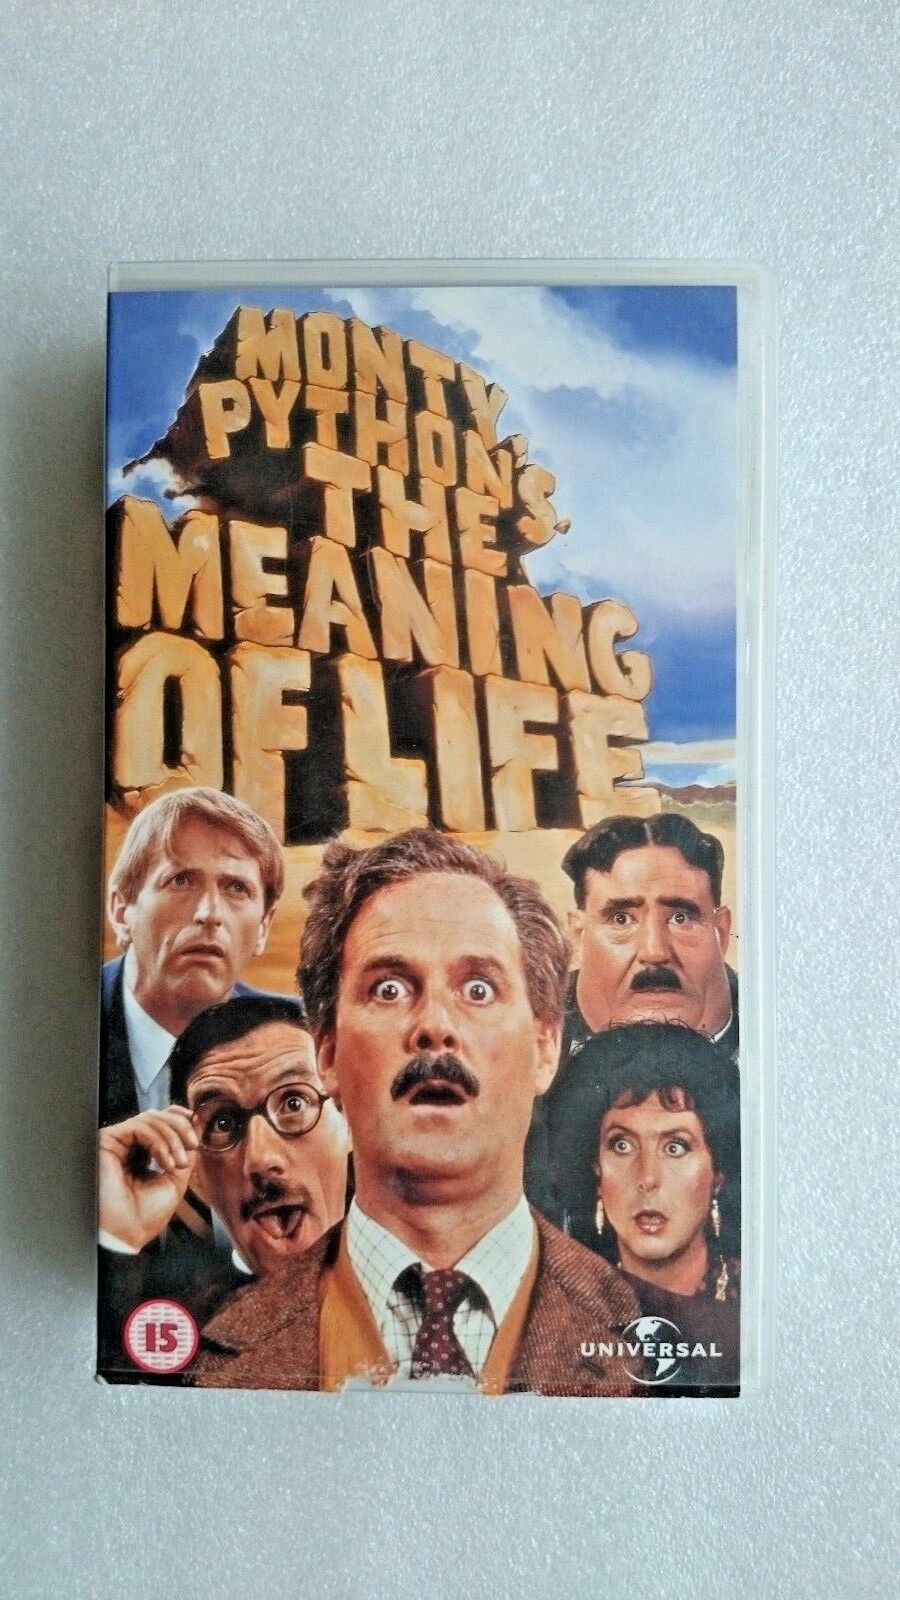 Monty Python's The Meaning Of Life (VHS, 2002)